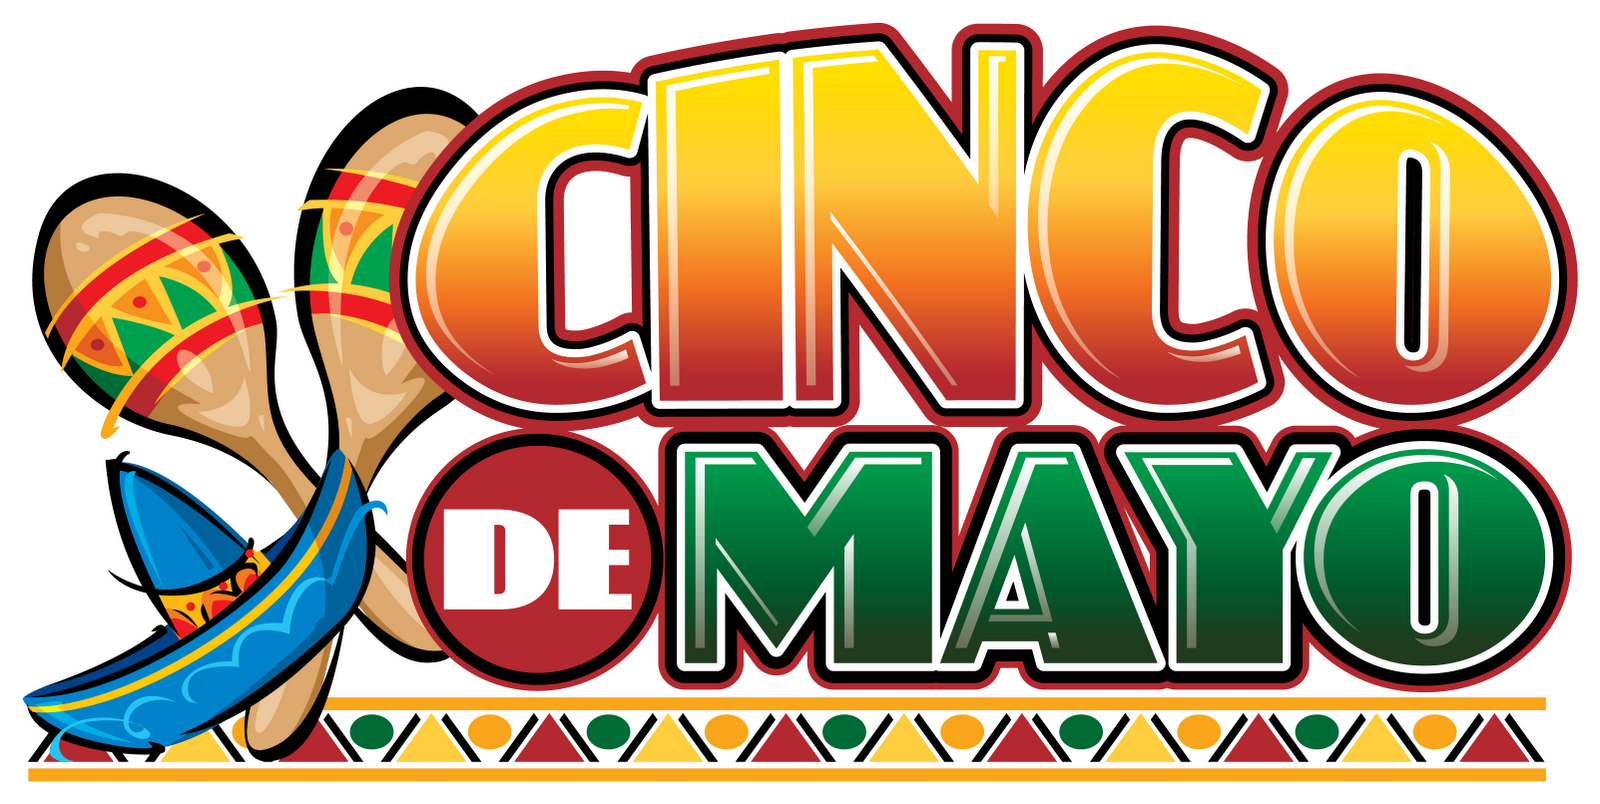 Free clipart cinco de mayo. Flyer images gallery for